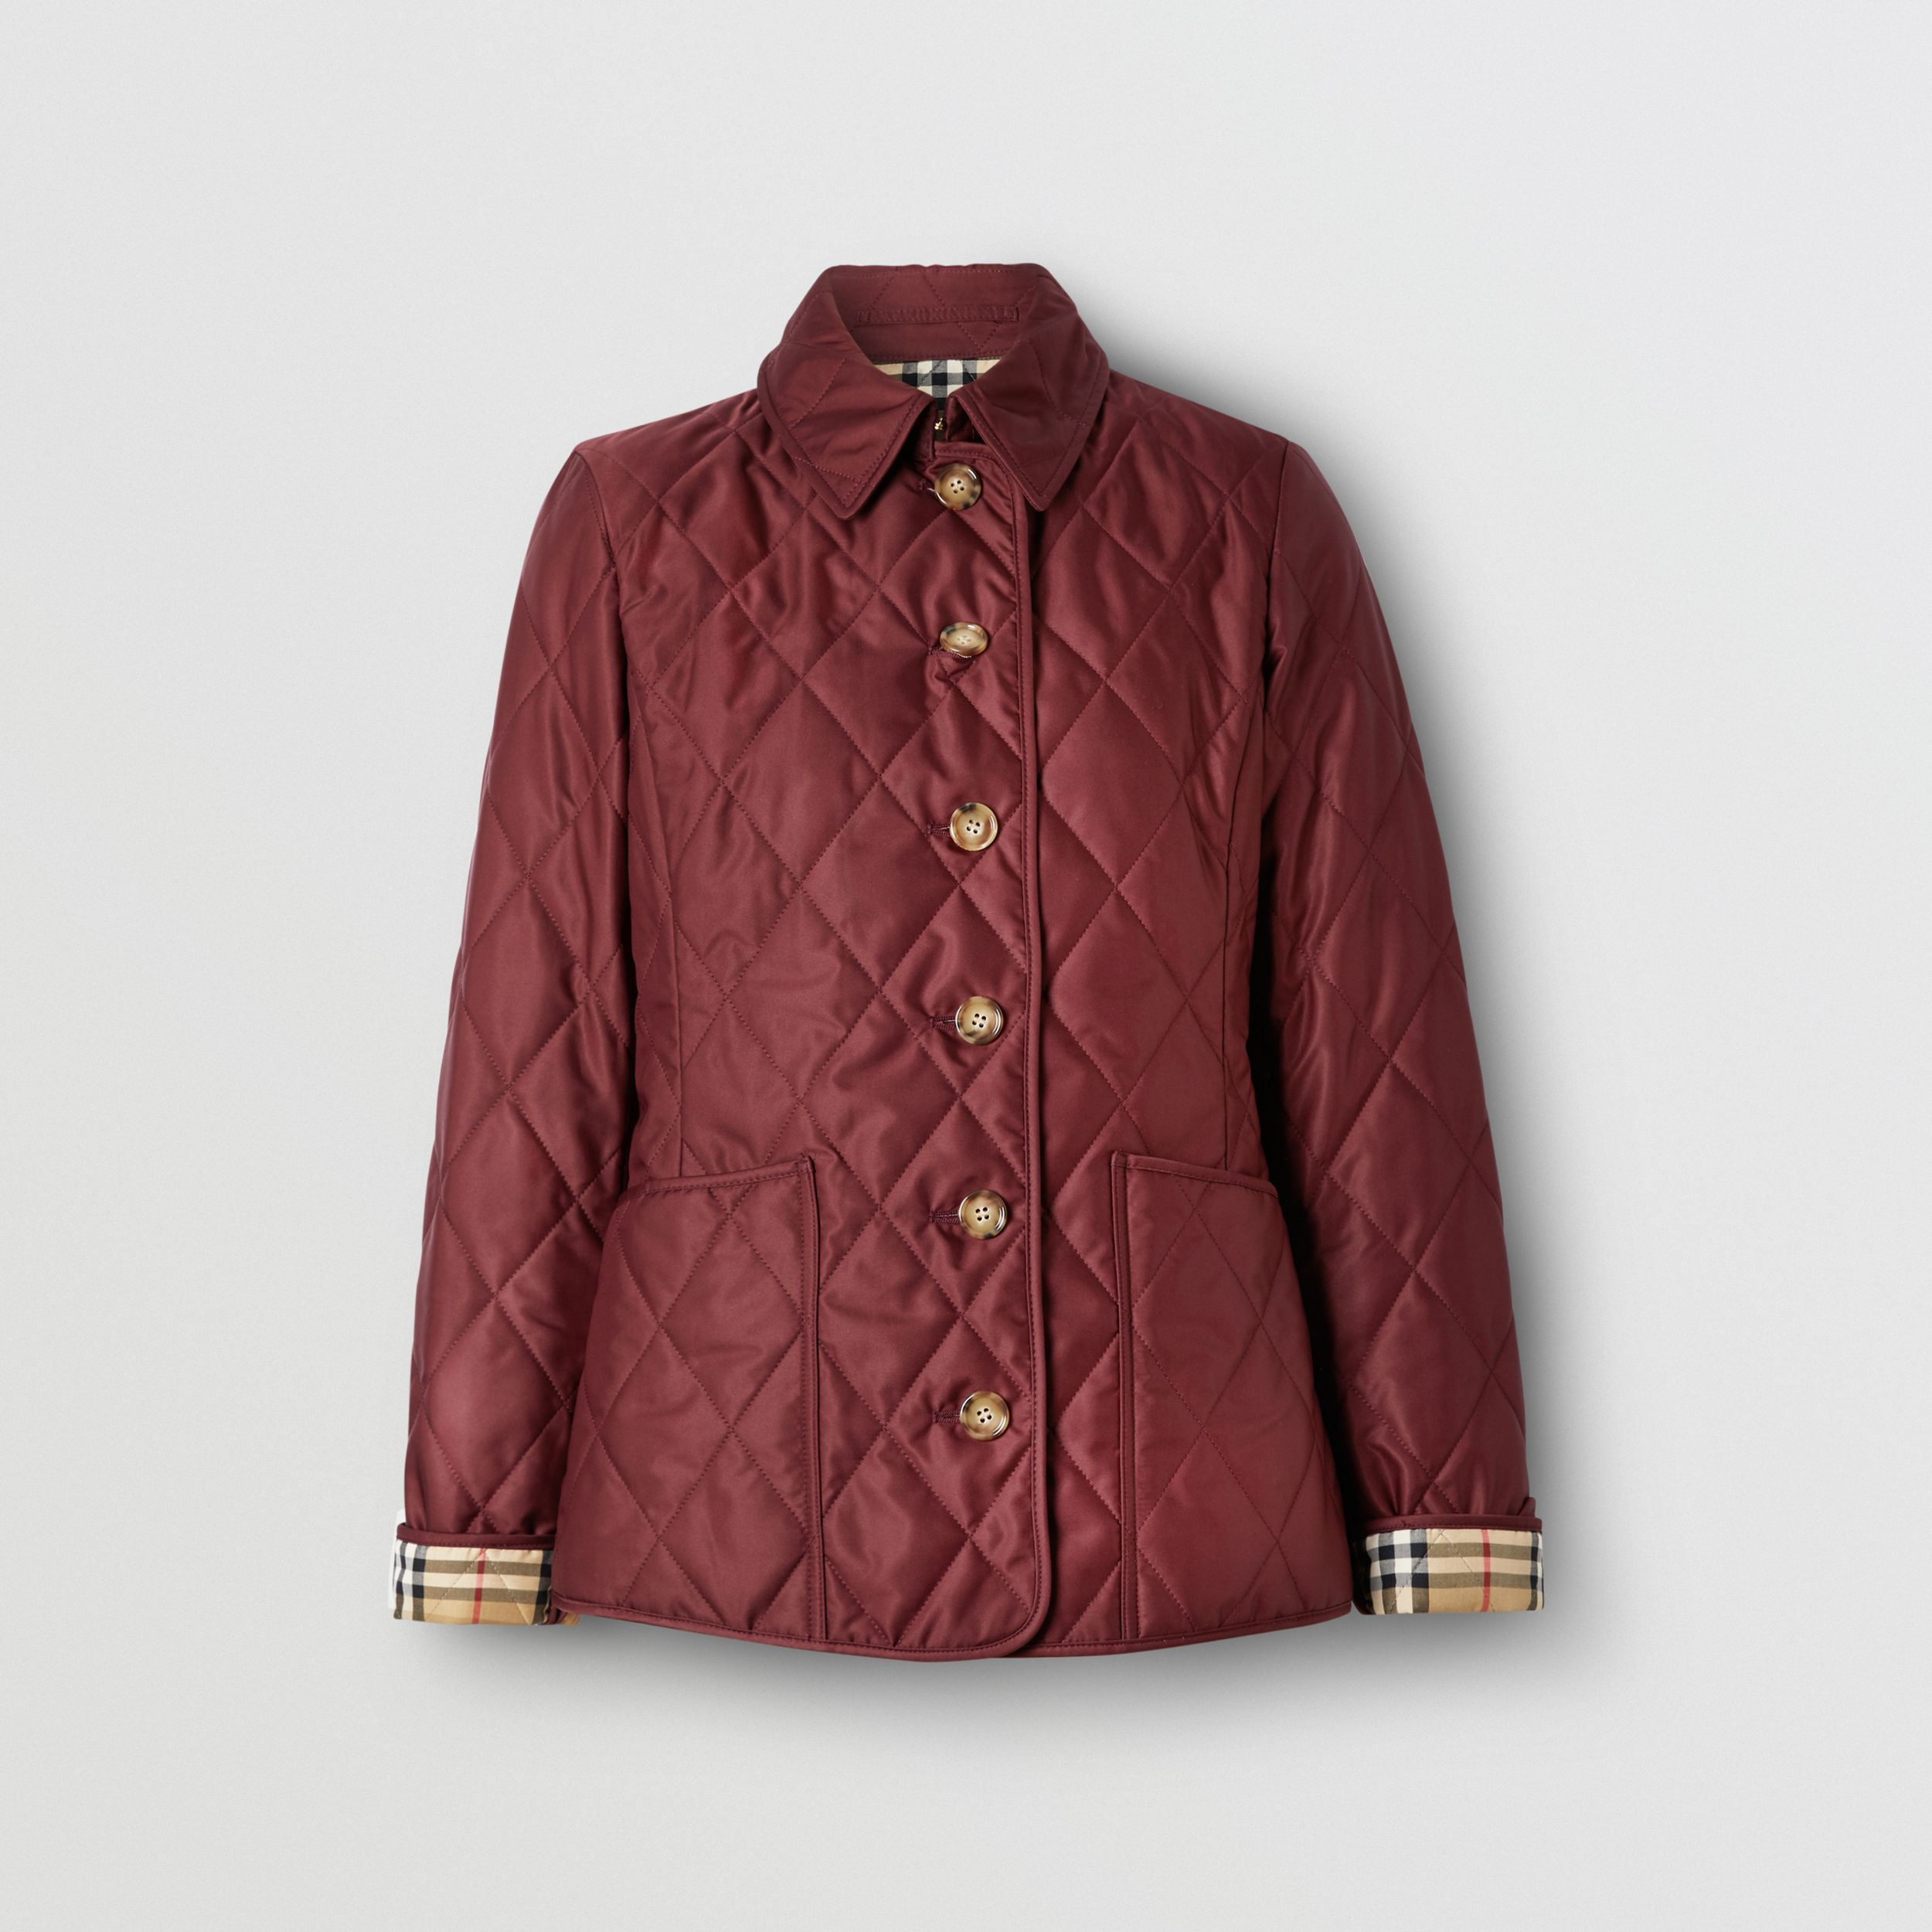 Diamond Quilted Thermoregulated Jacket in Deep Claret - Women | Burberry Australia - 4